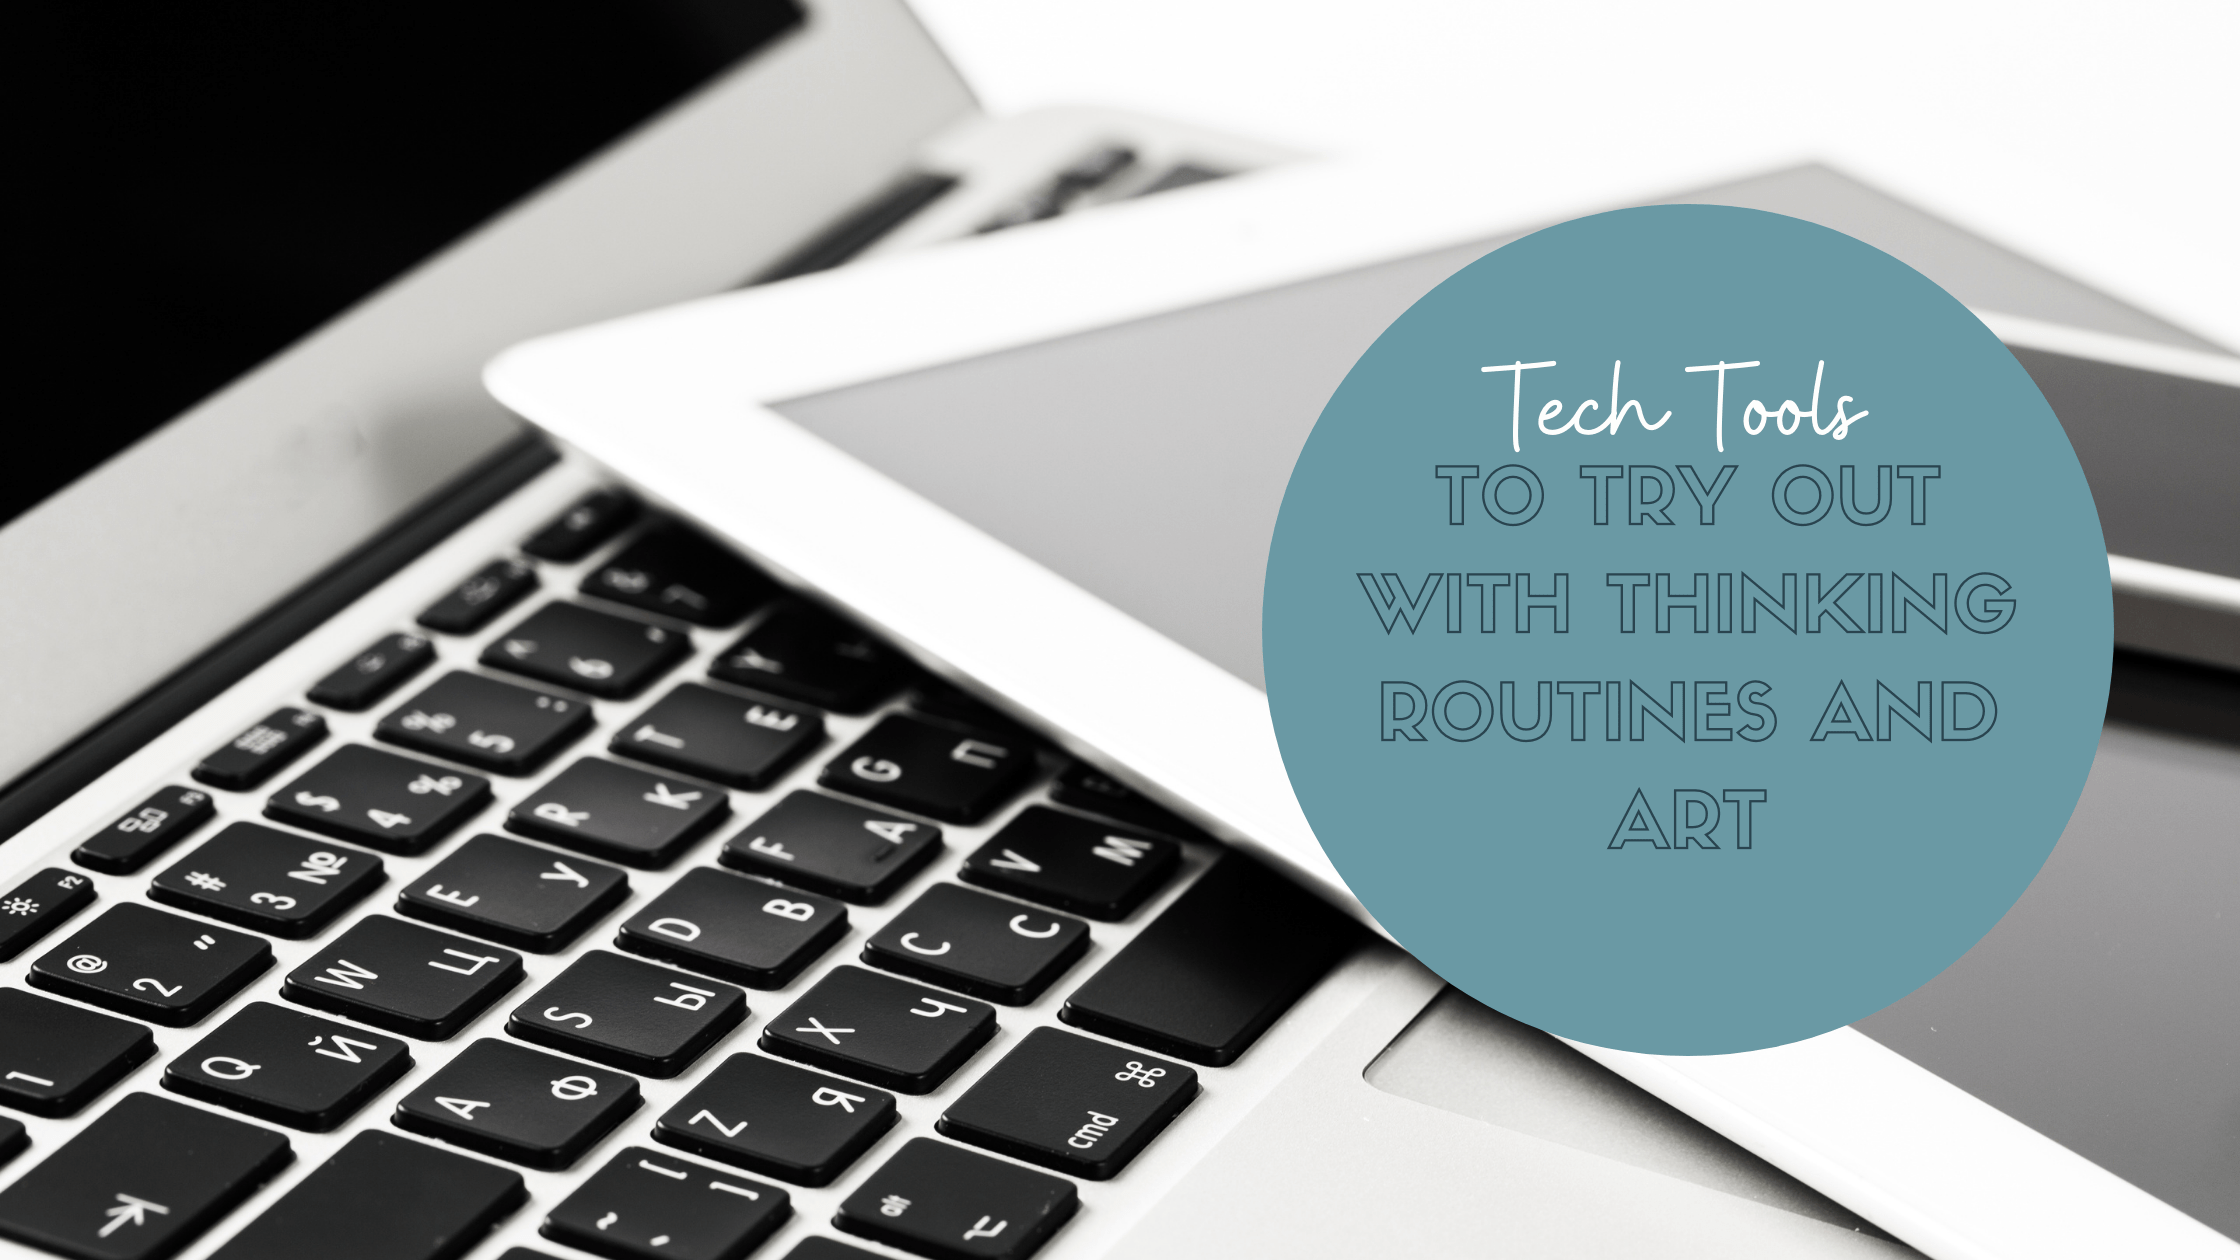 Tech Tools To Try Out with Thinking Routines and Art